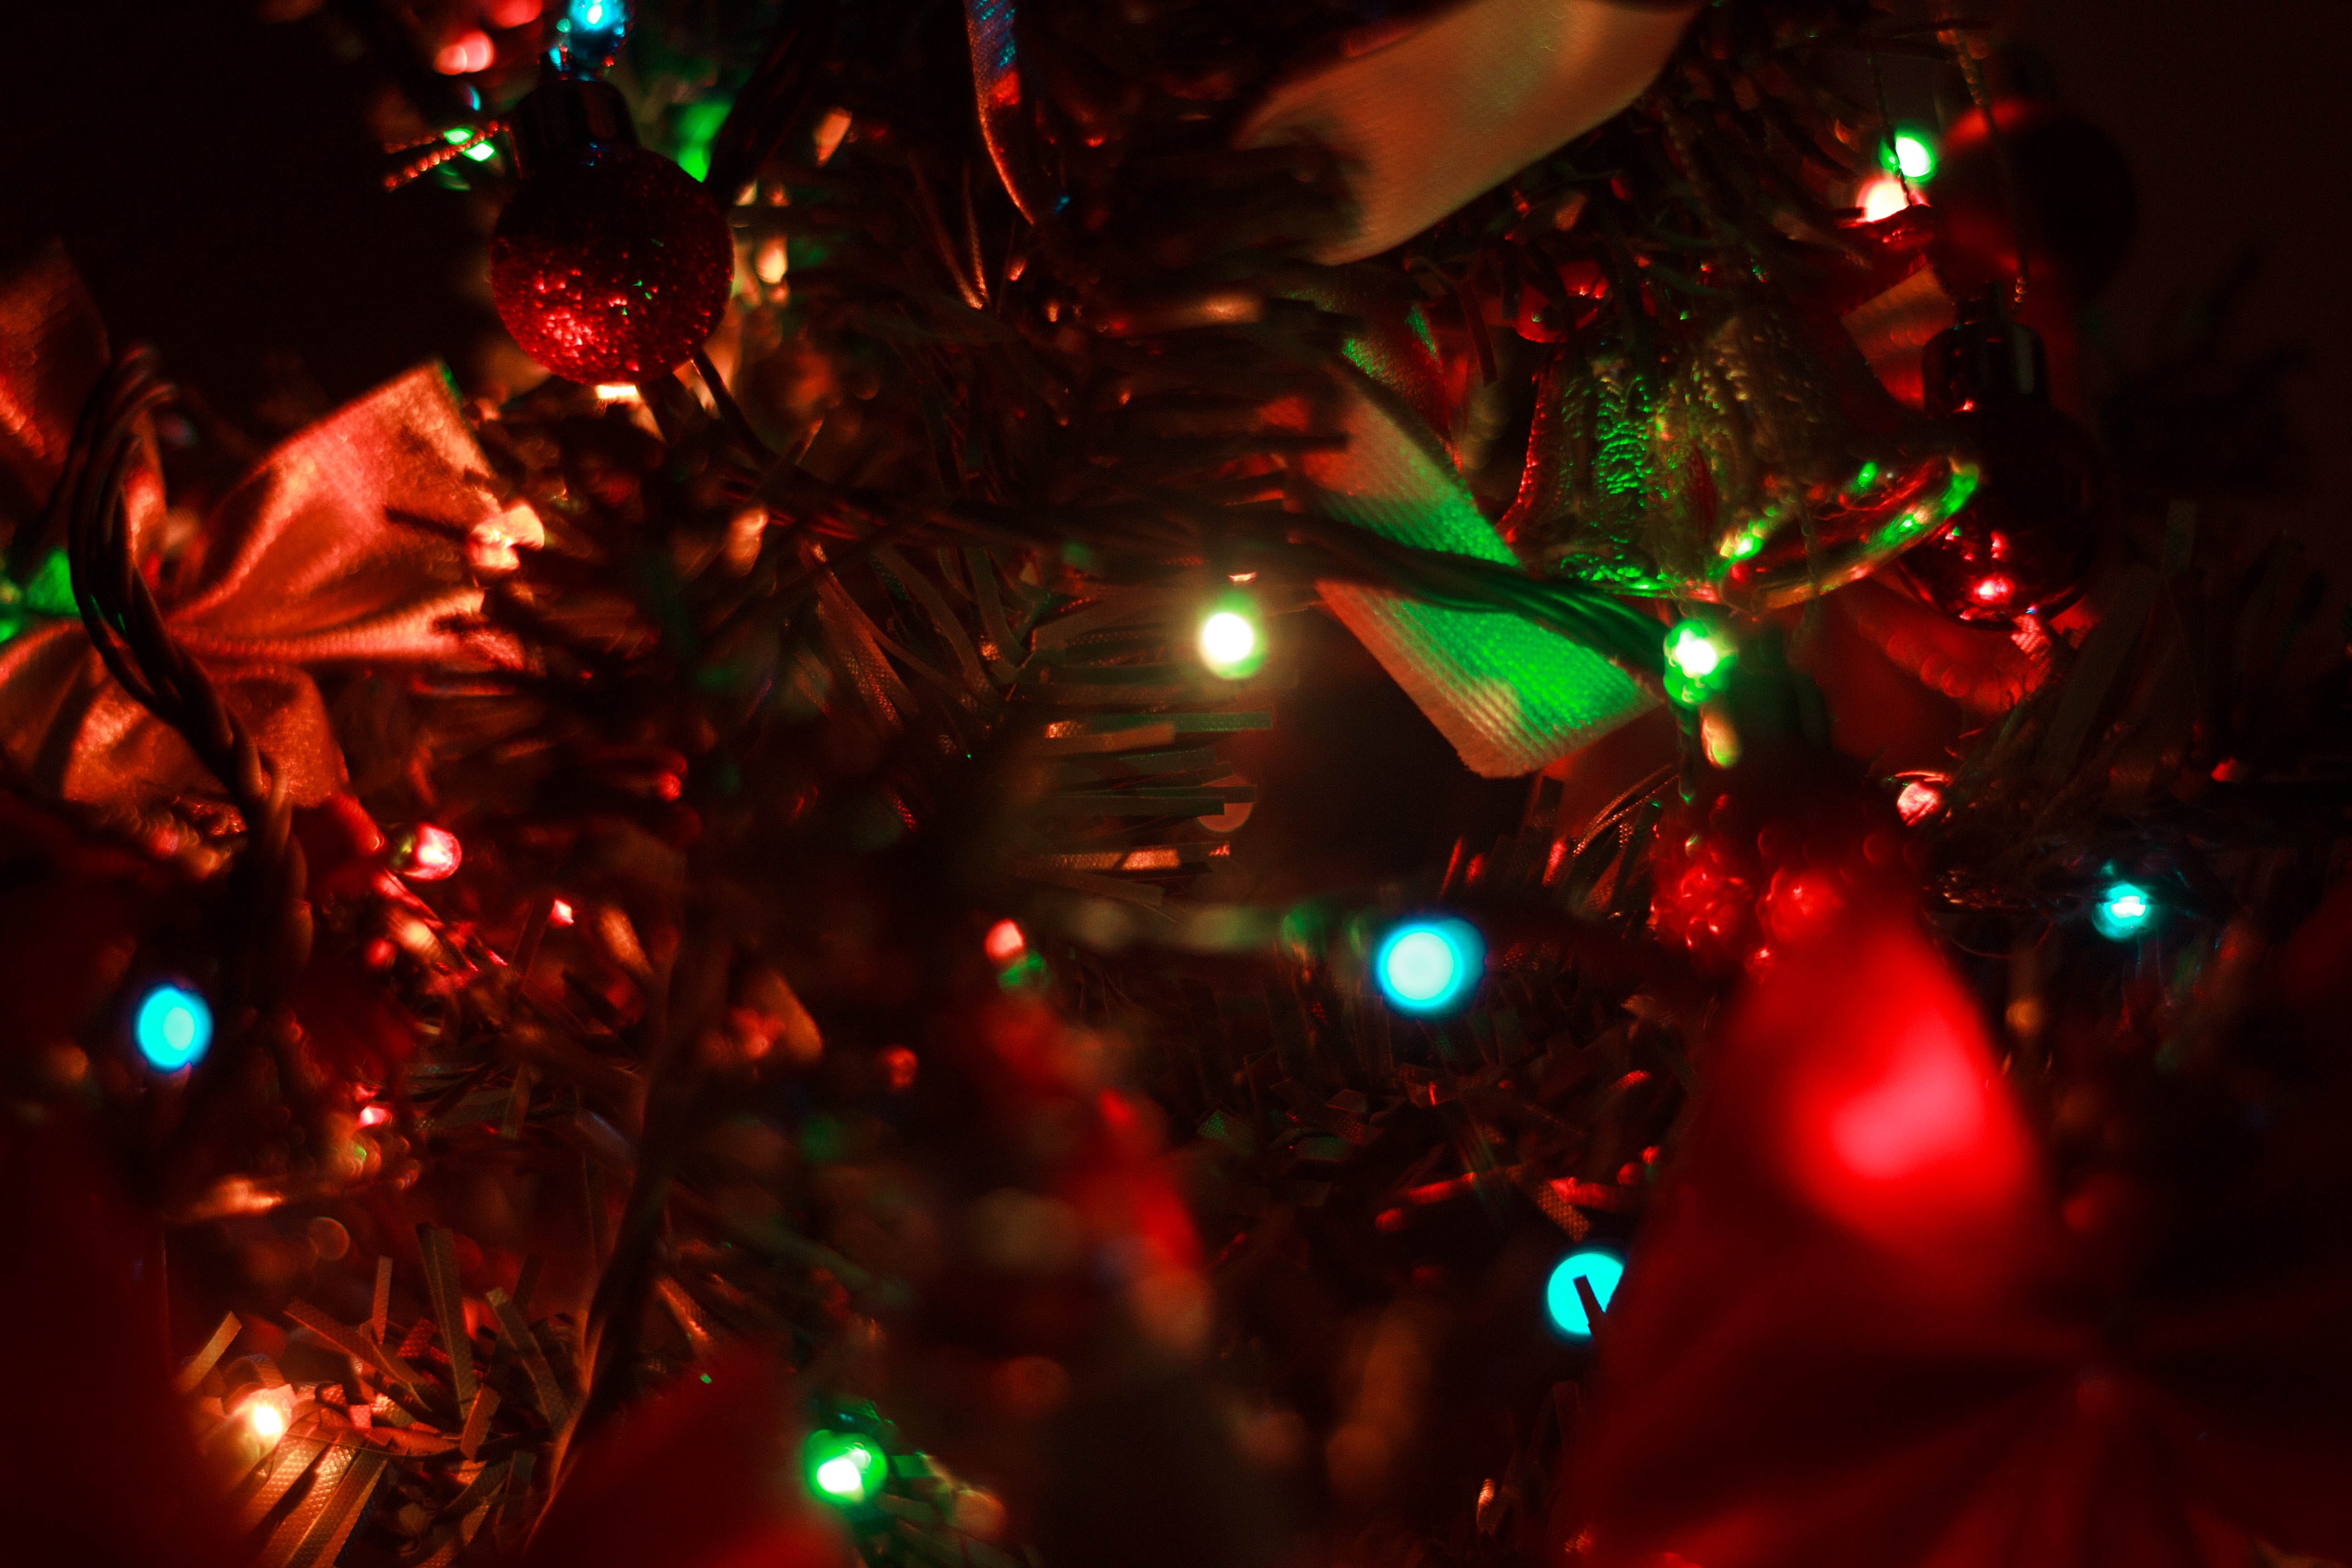 Close Up Photo of Christmas Tree With String Lights